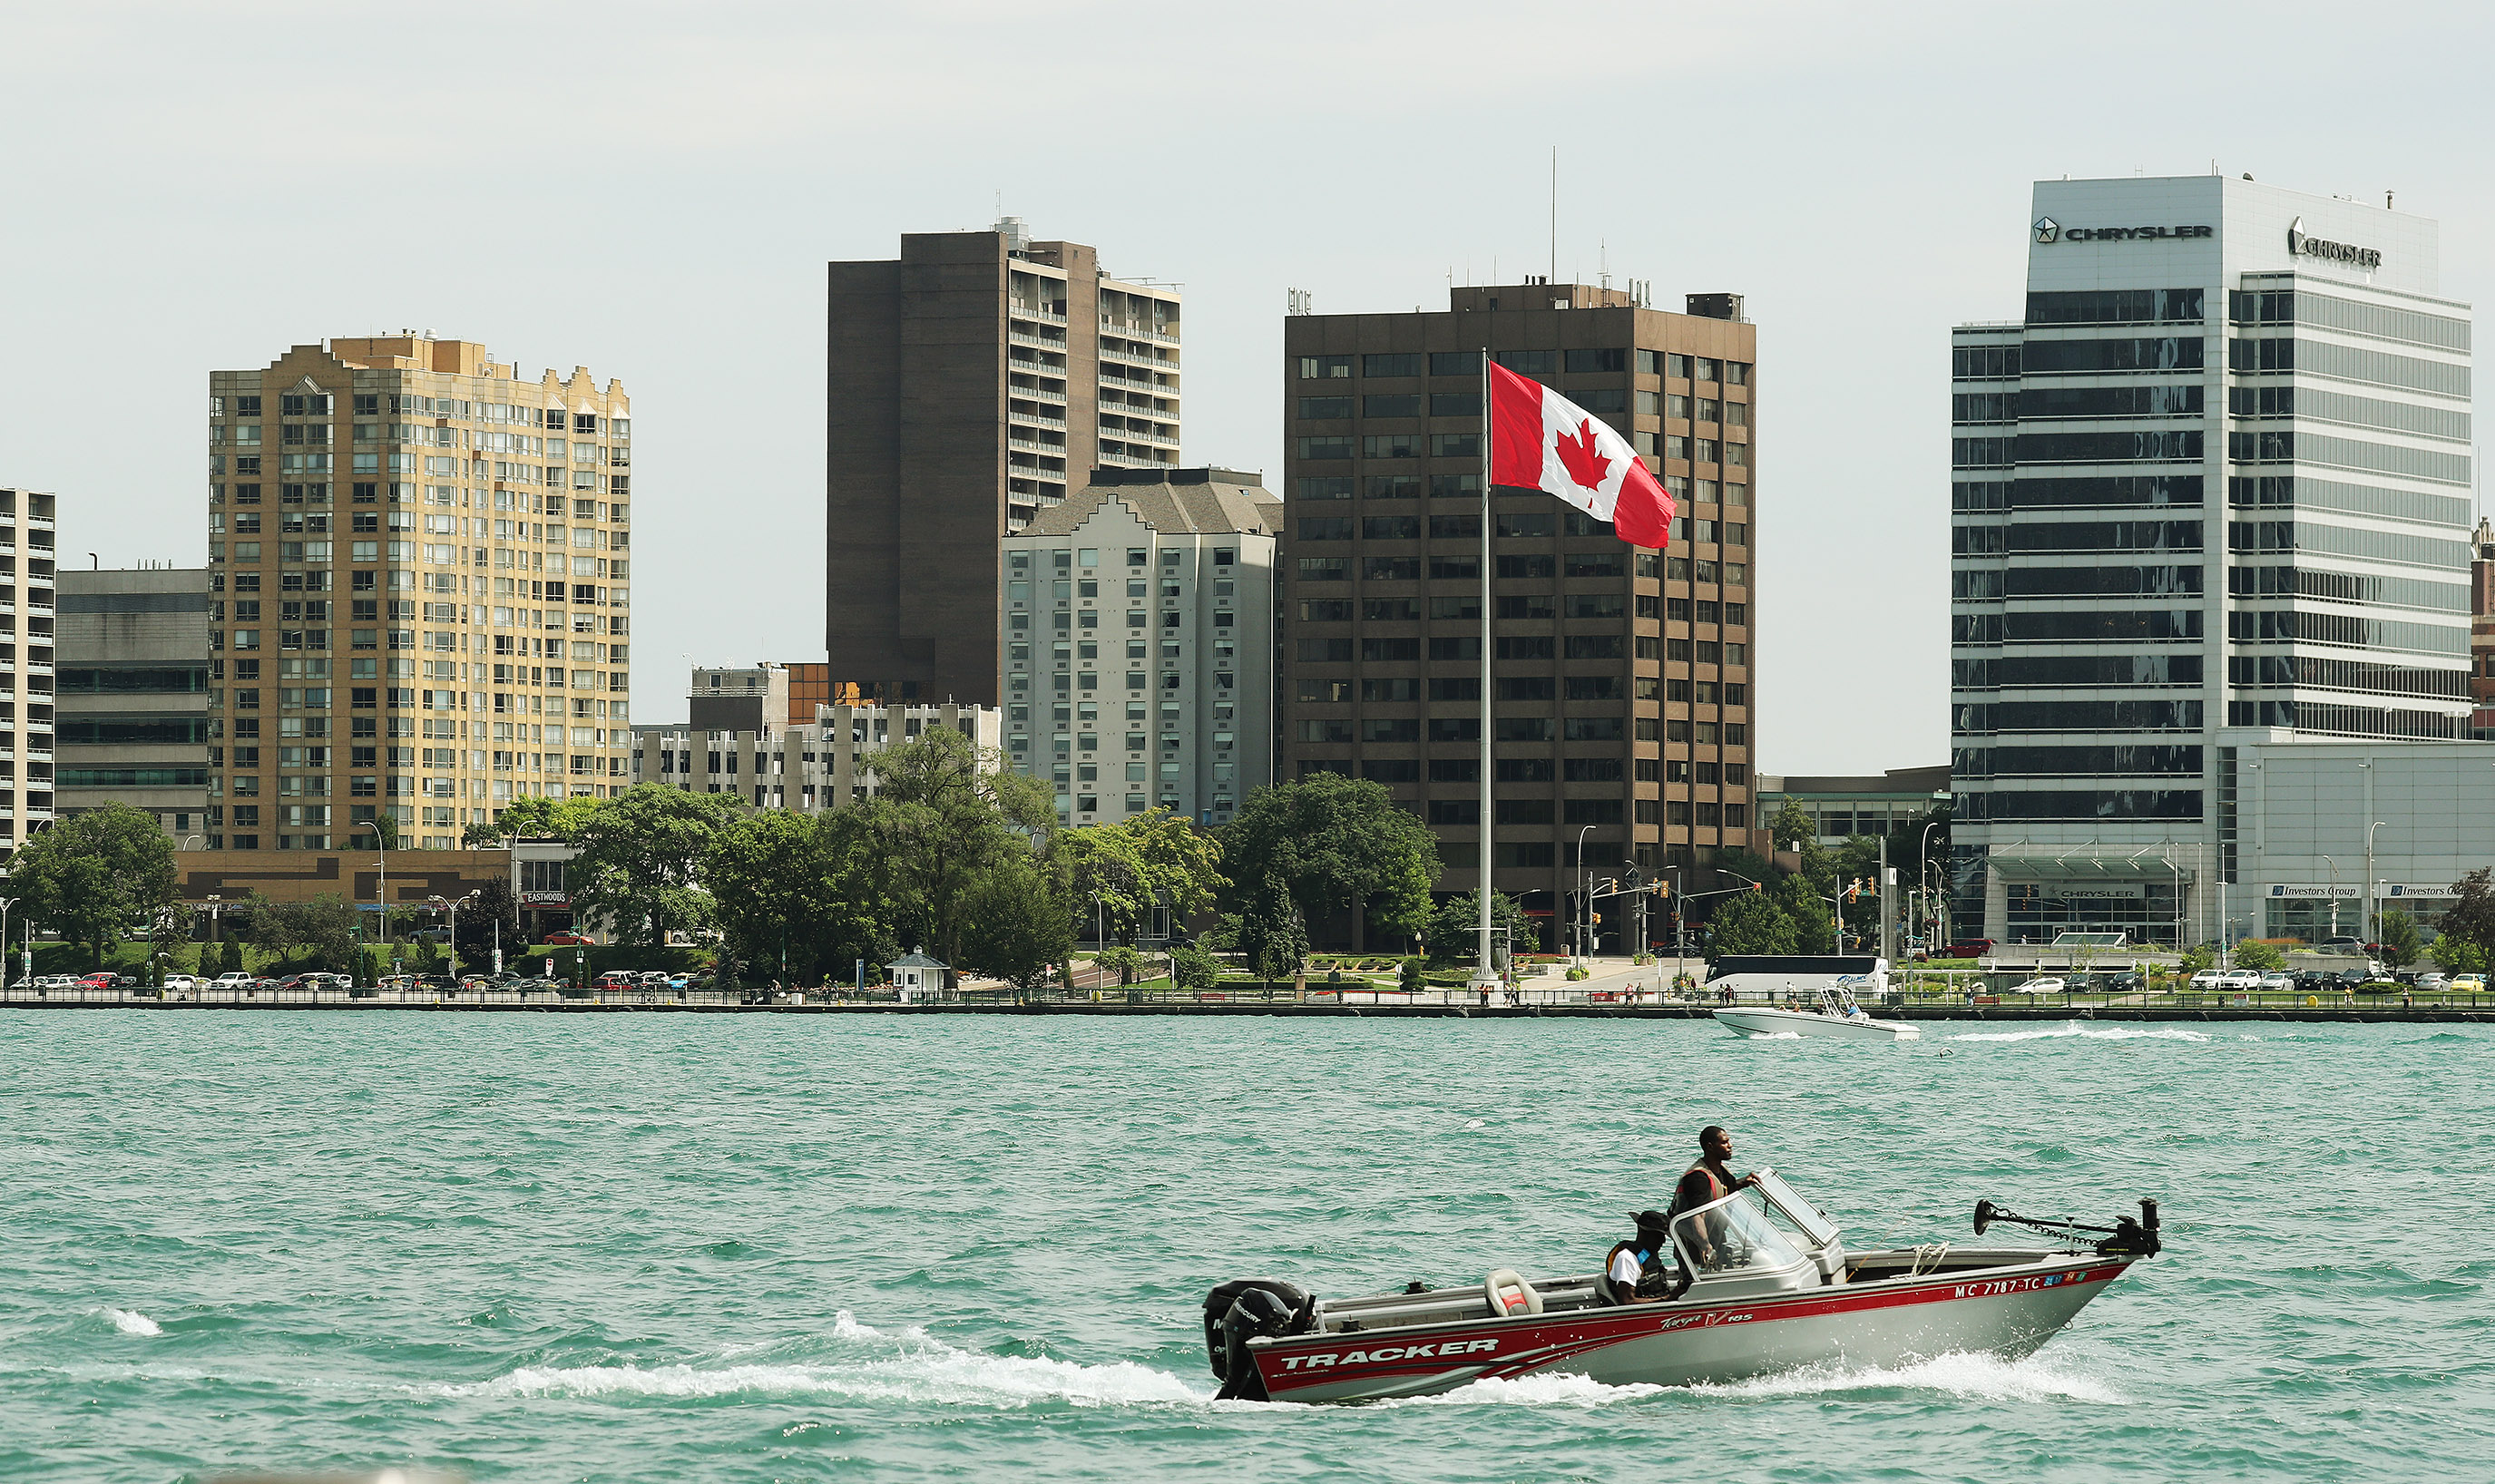 A boater has a view of Canada while on the Detroit River in Detroit, Michigan, on Sunday, July 21, 2019.